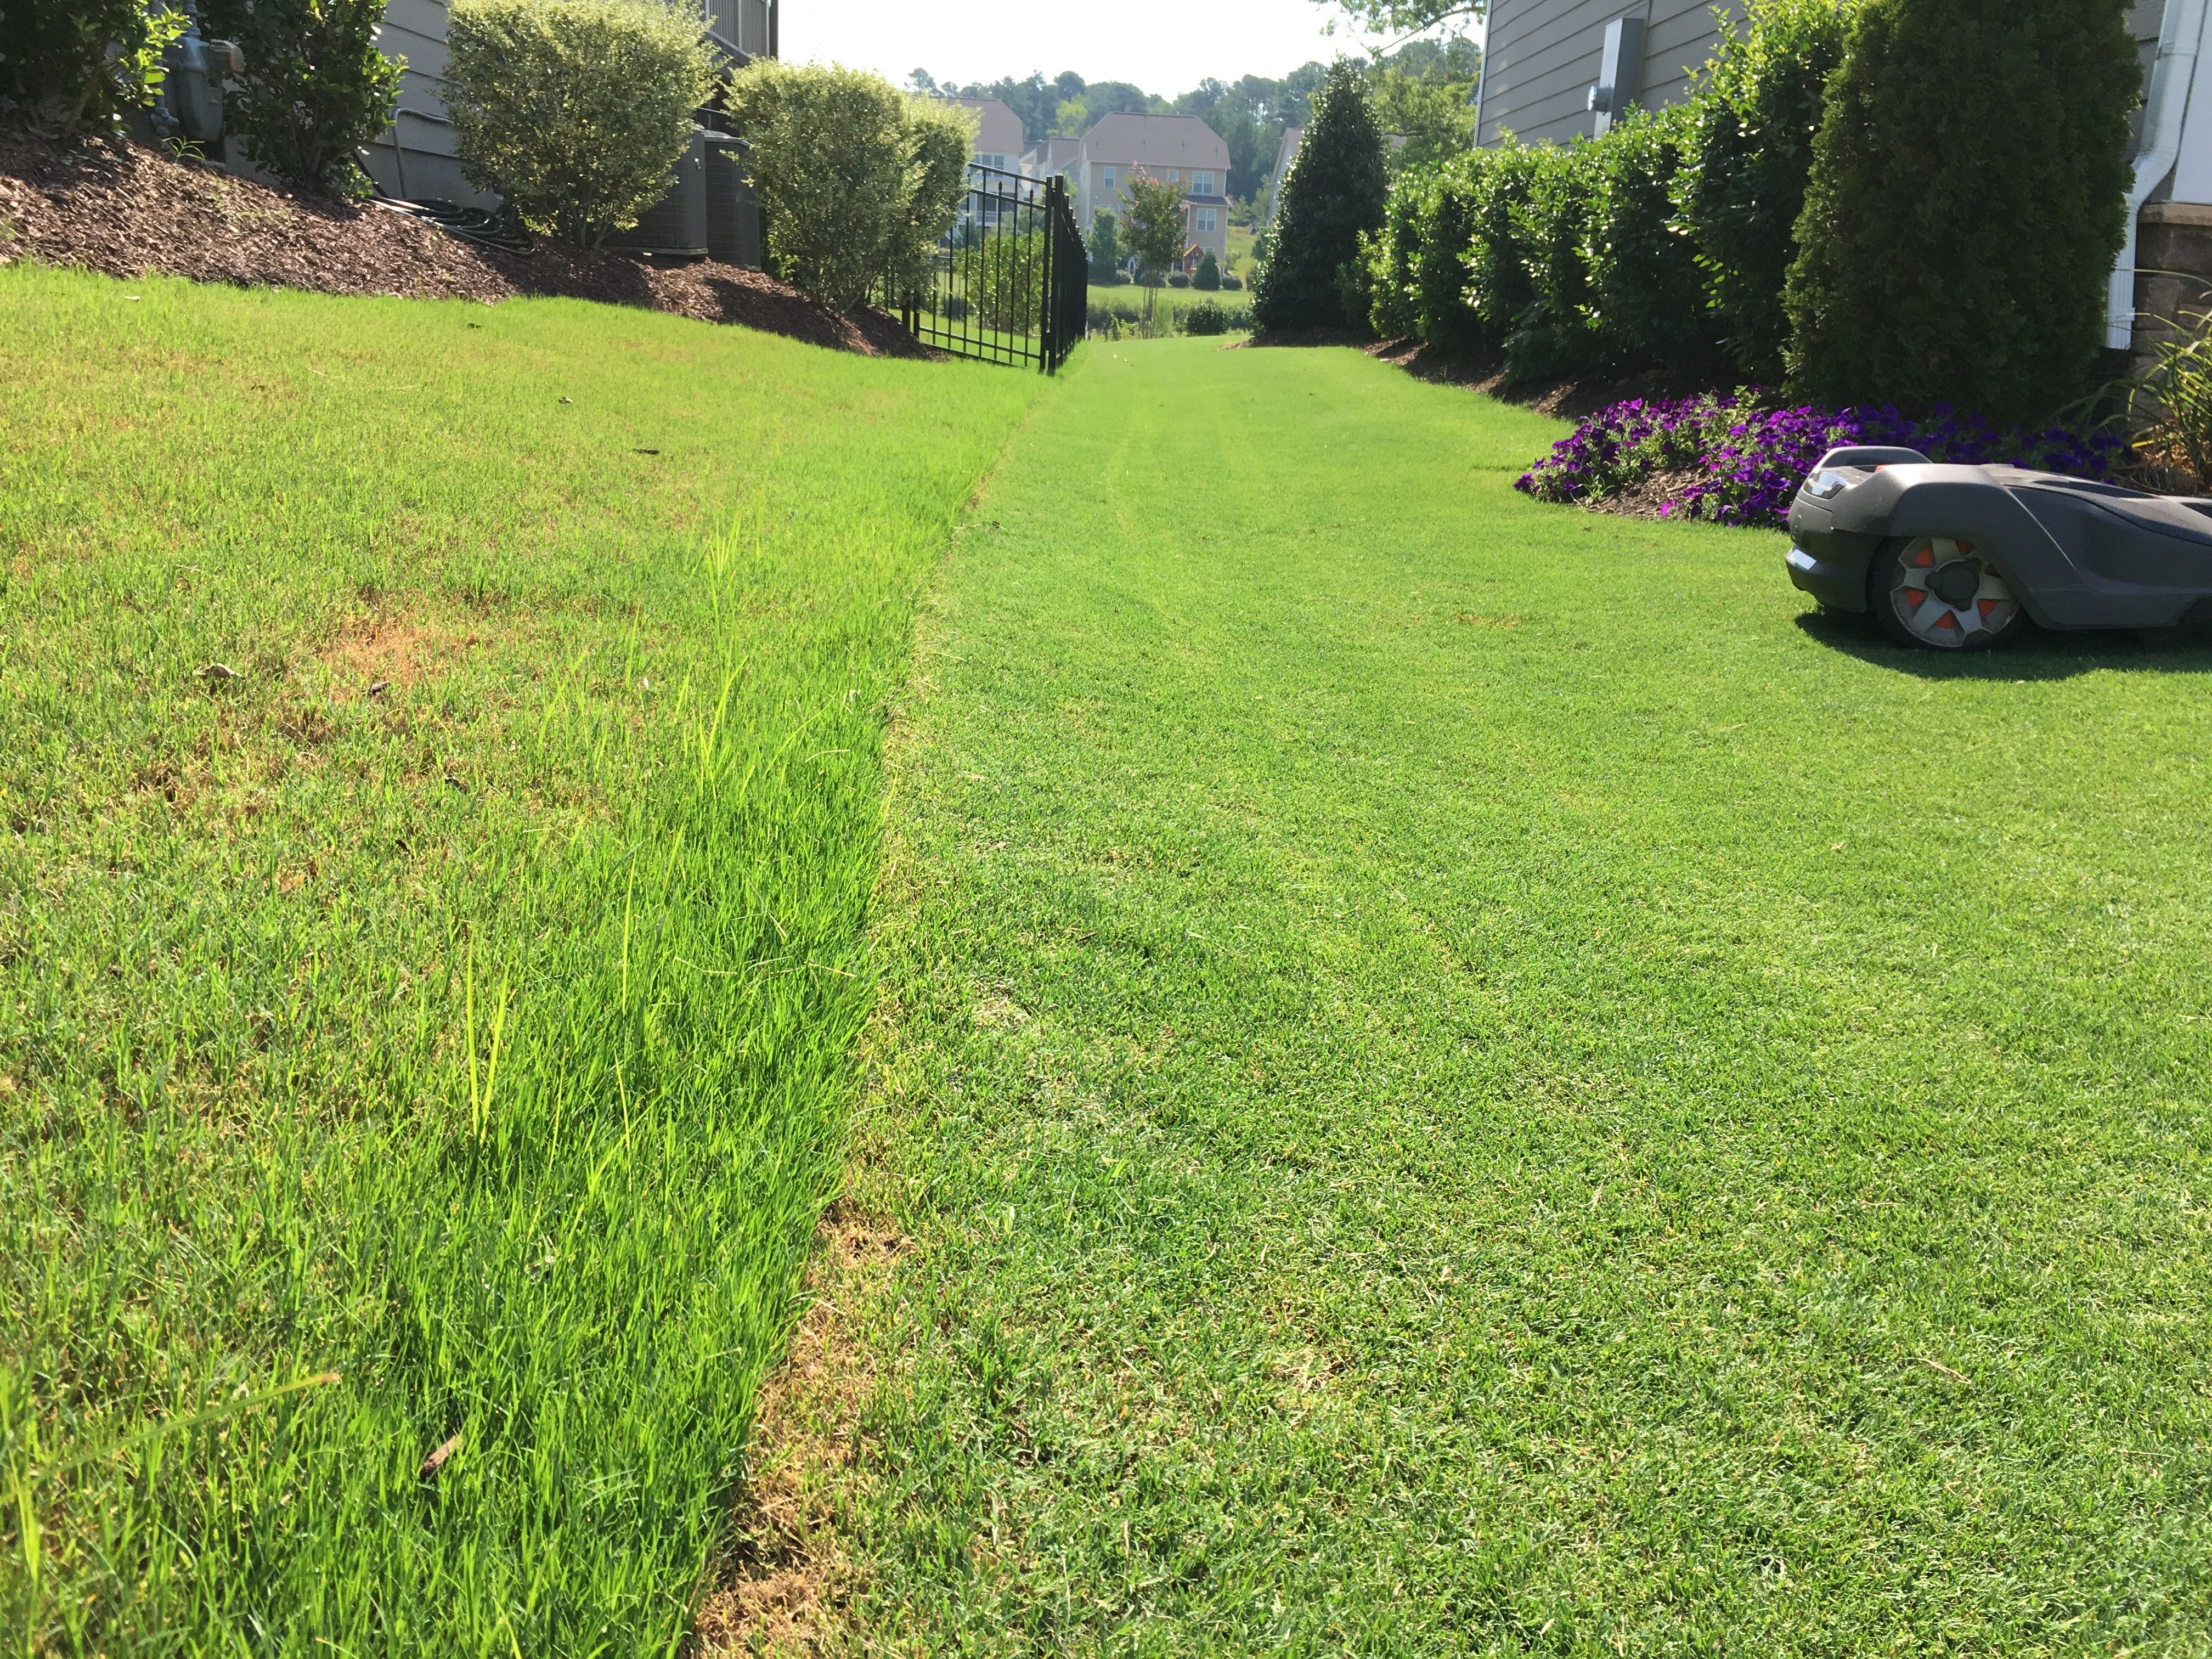 rotary mower comparison with robotic mower on Bermudagrass